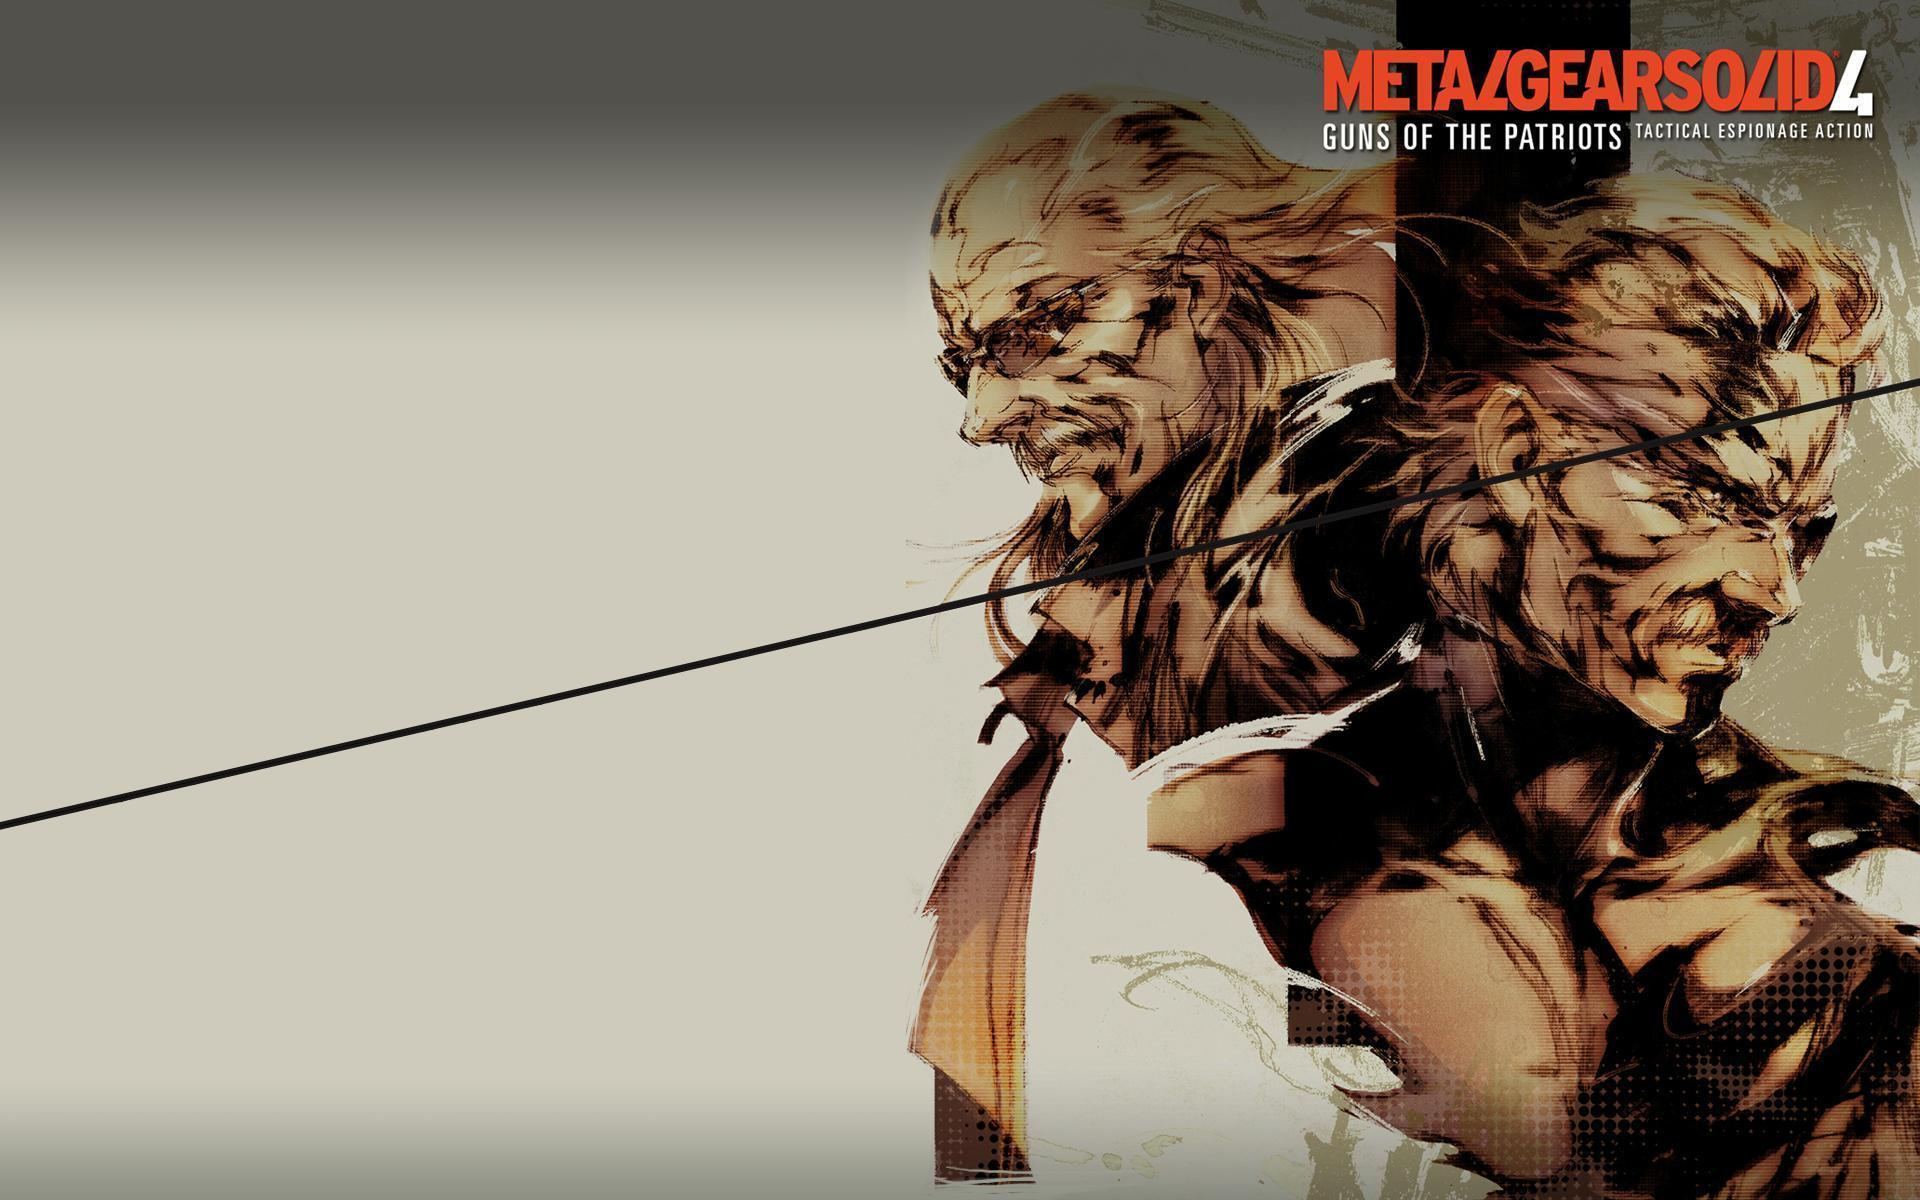 metal gear hd wallpapers - photo #14